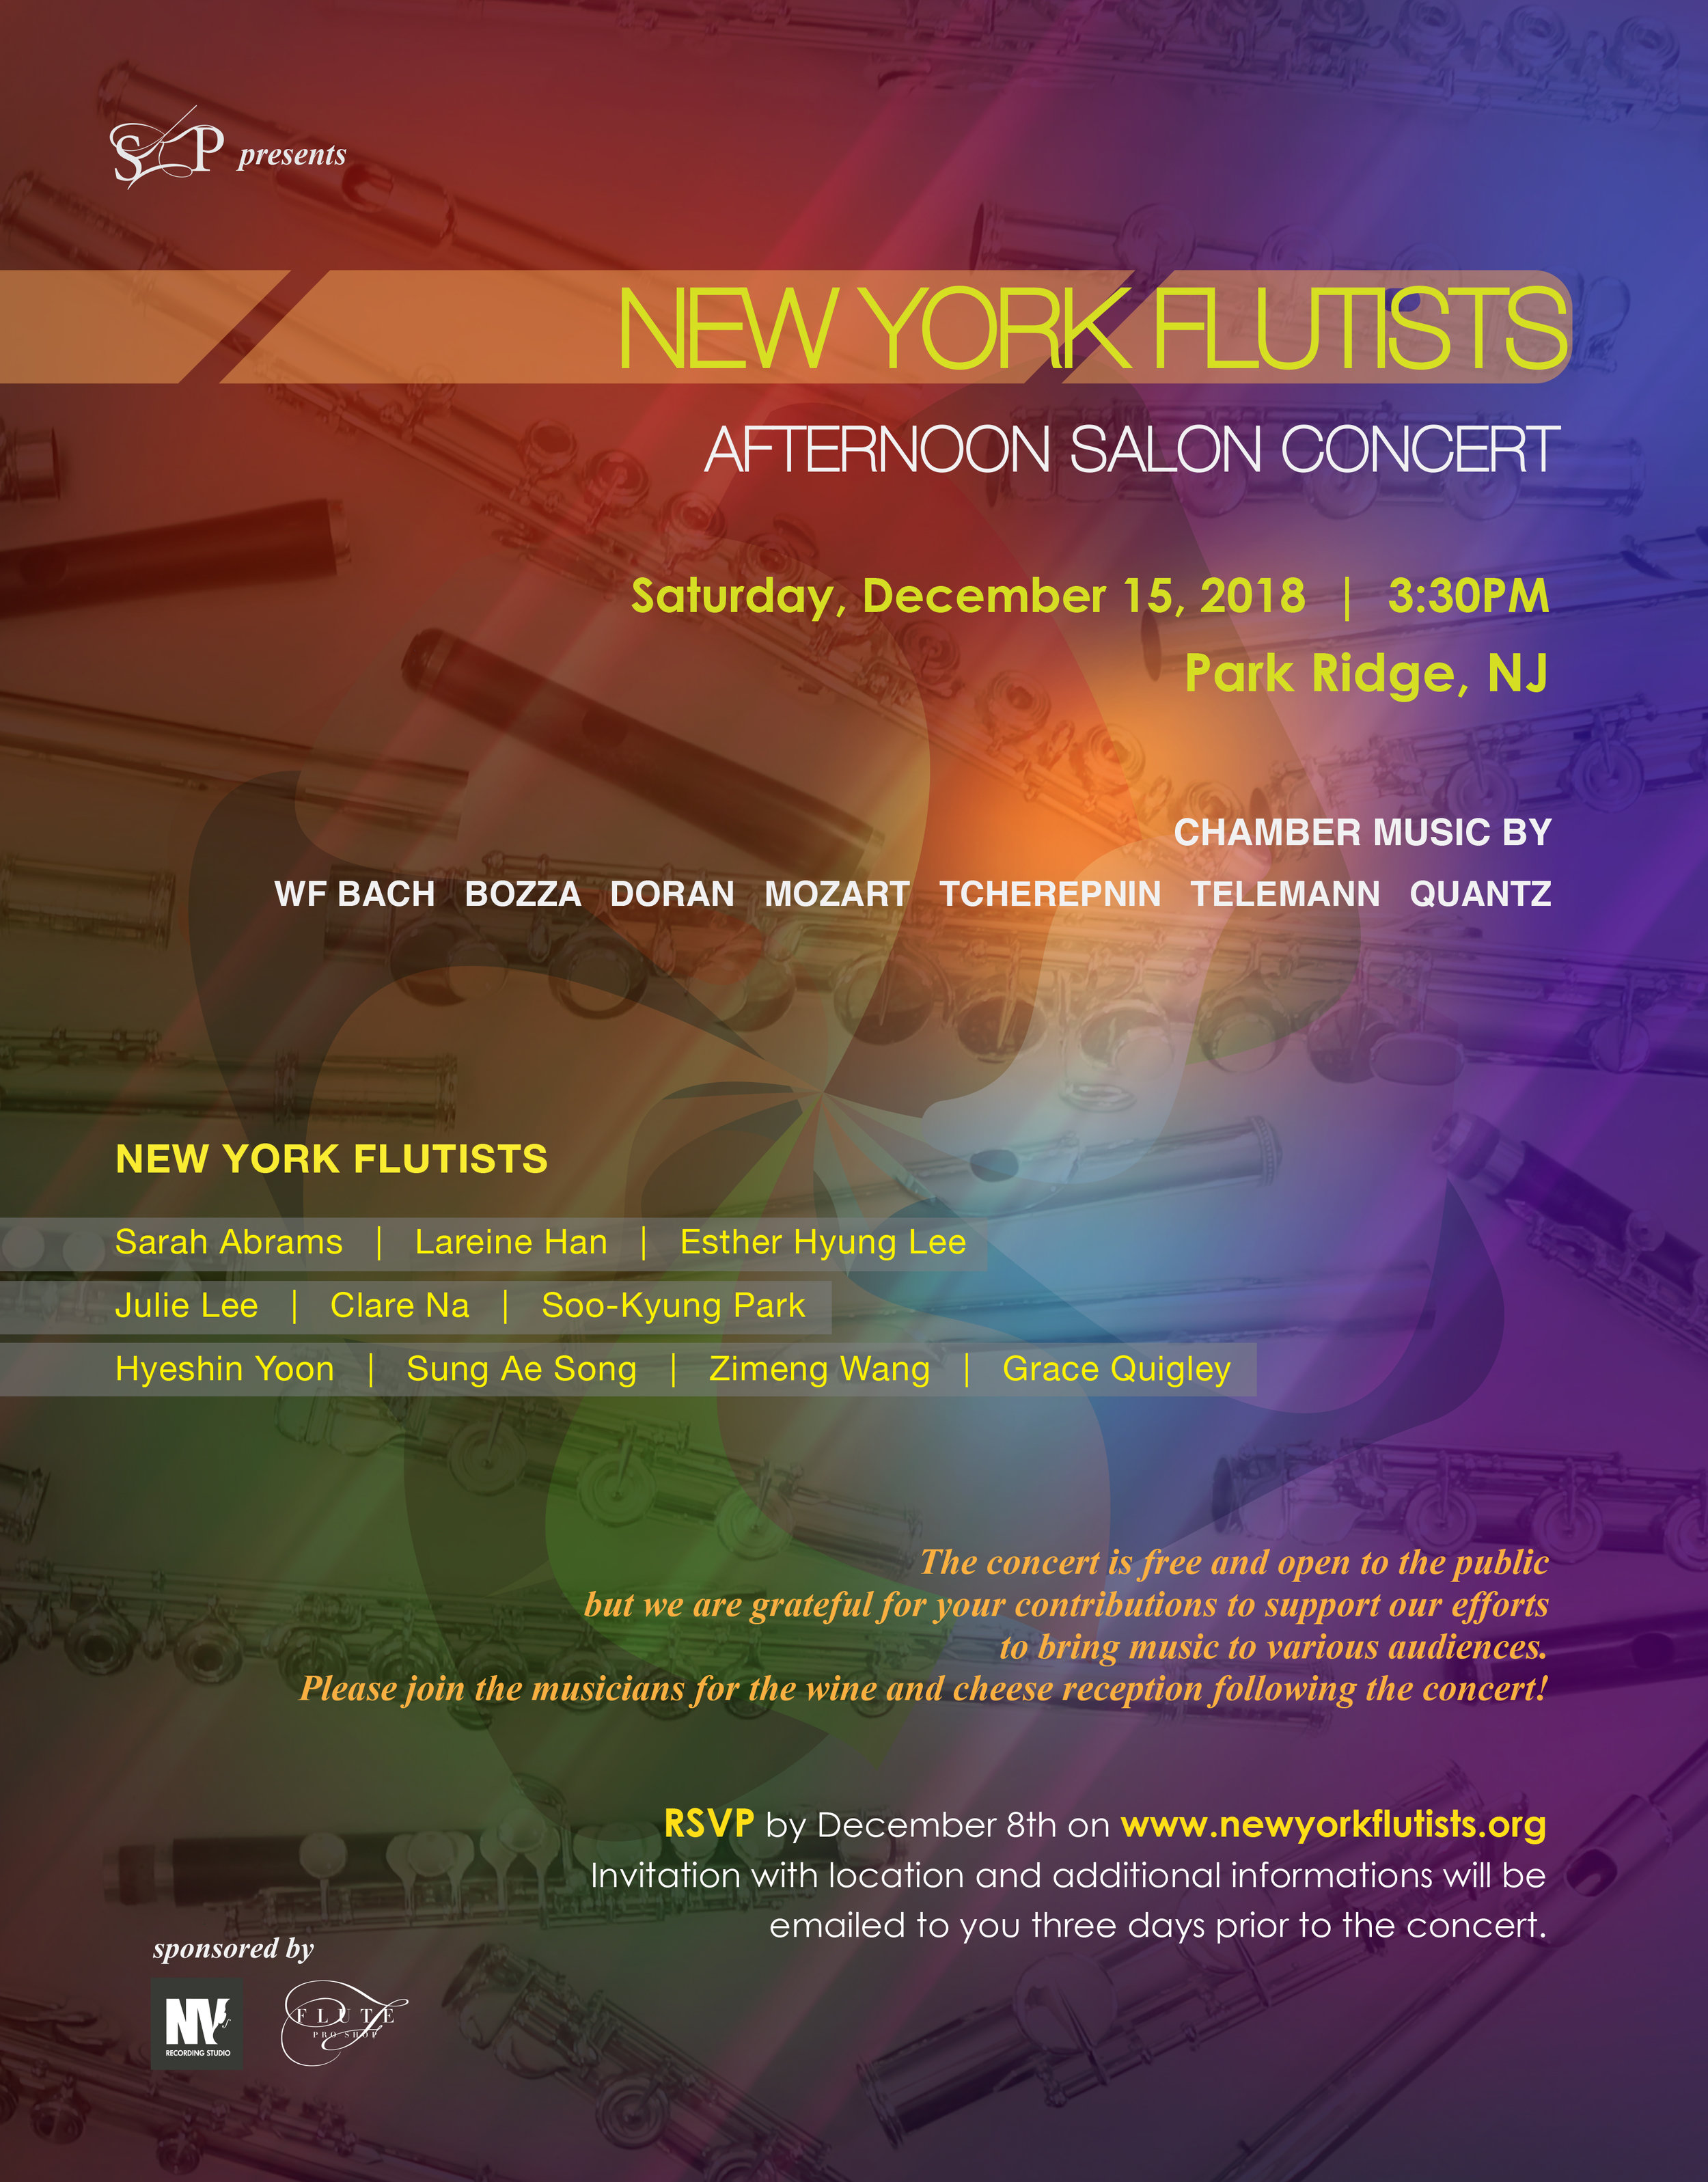 New York Flutists Afternoon Salon Concert